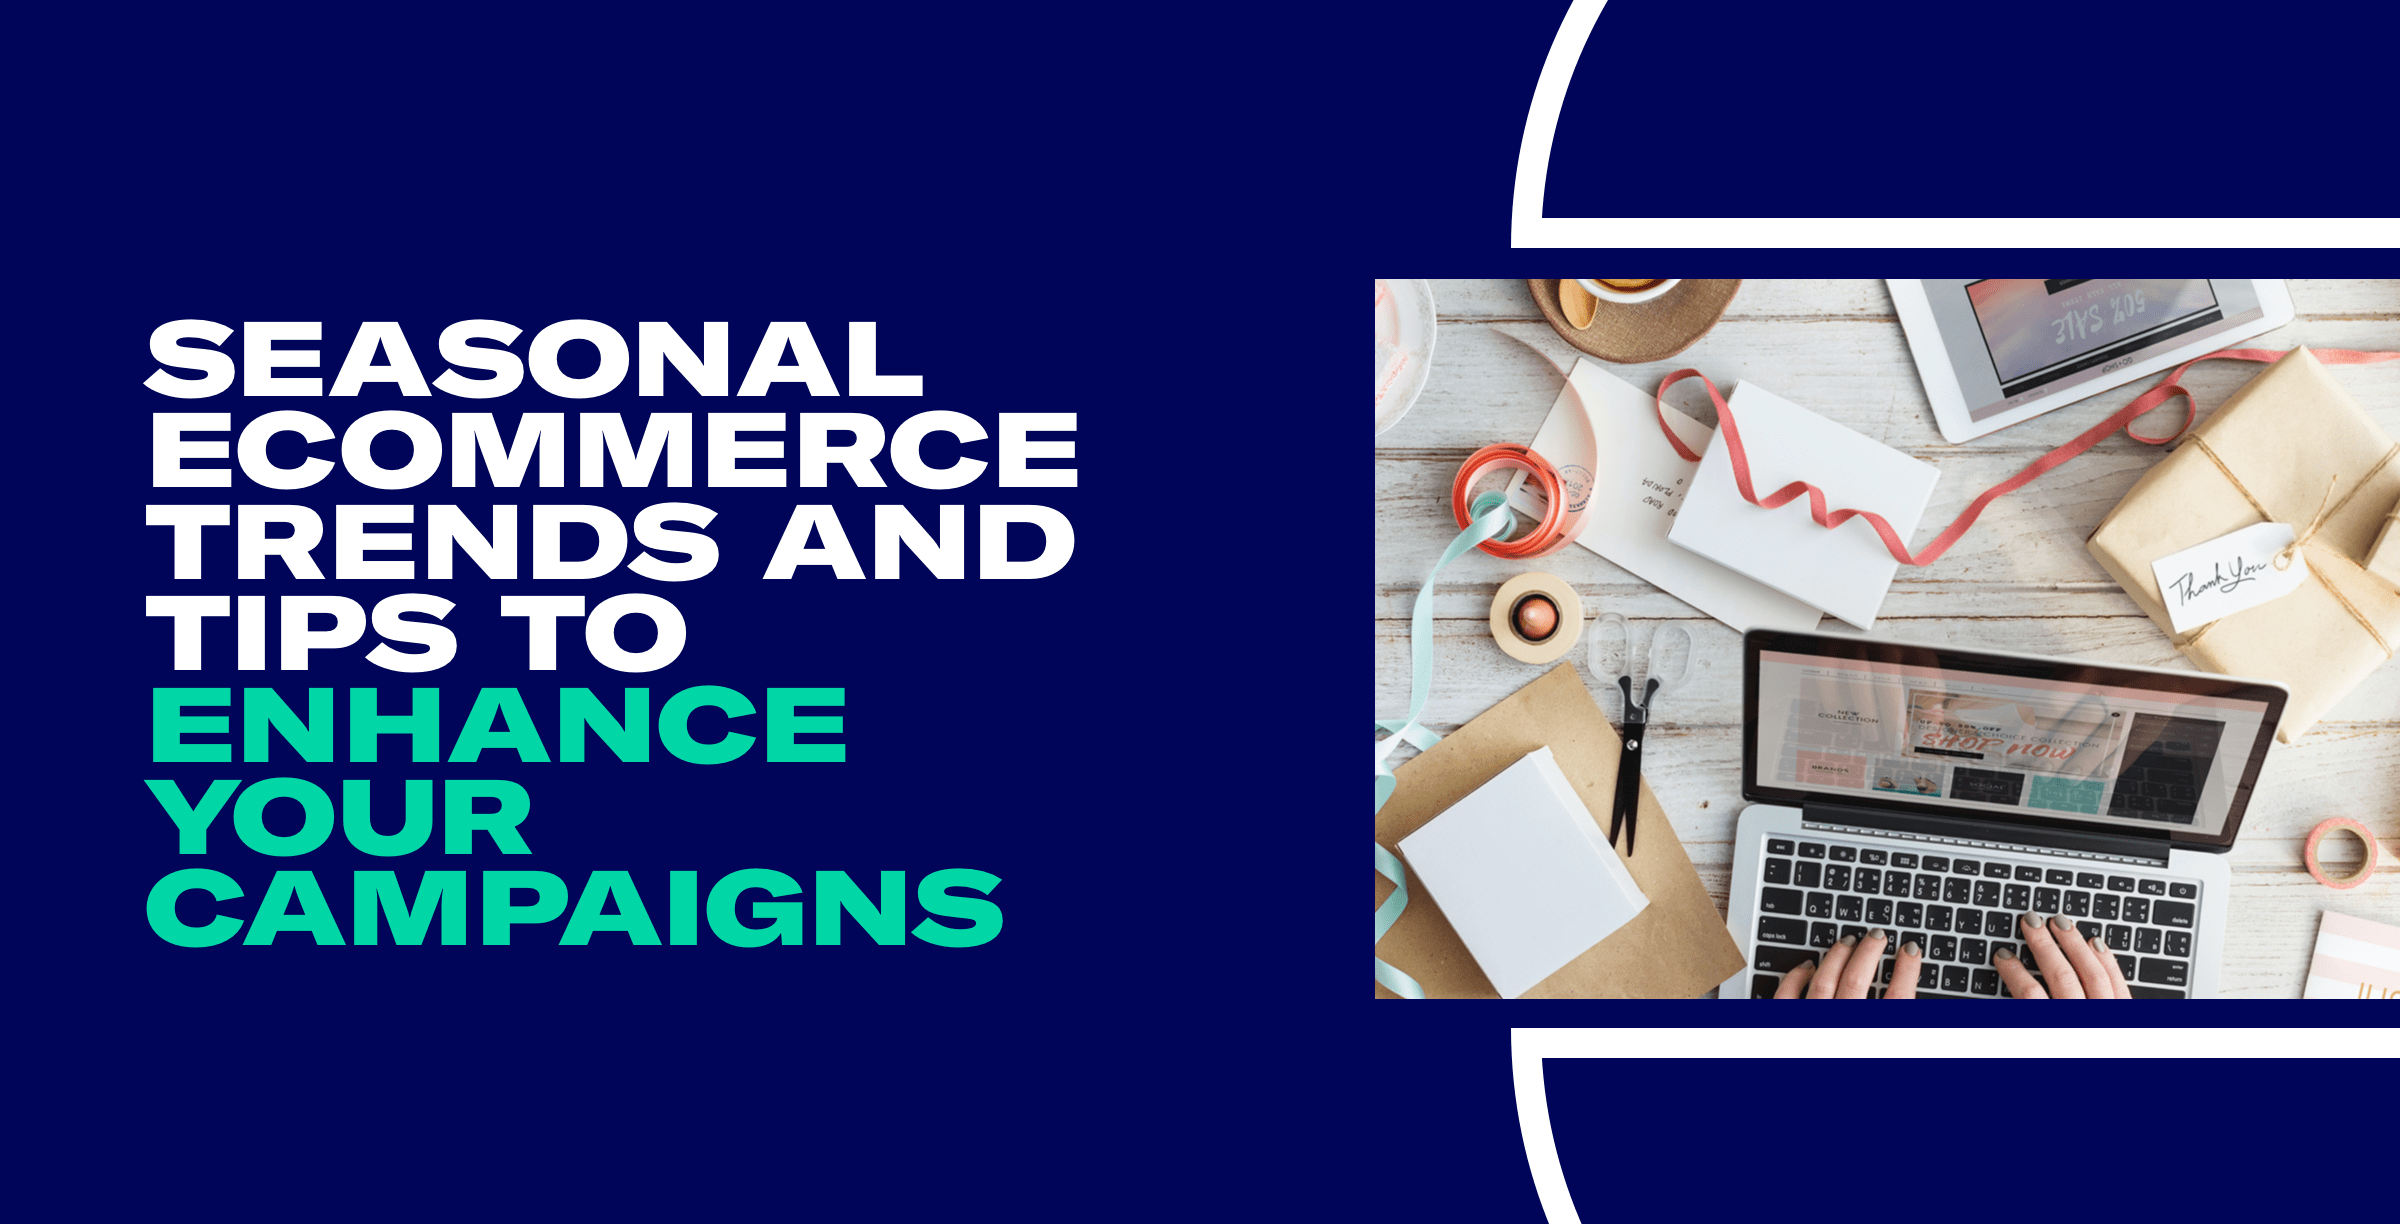 Seasonal eCommerce Trends and Tips to Enhance Your Campaigns_Email Header.png